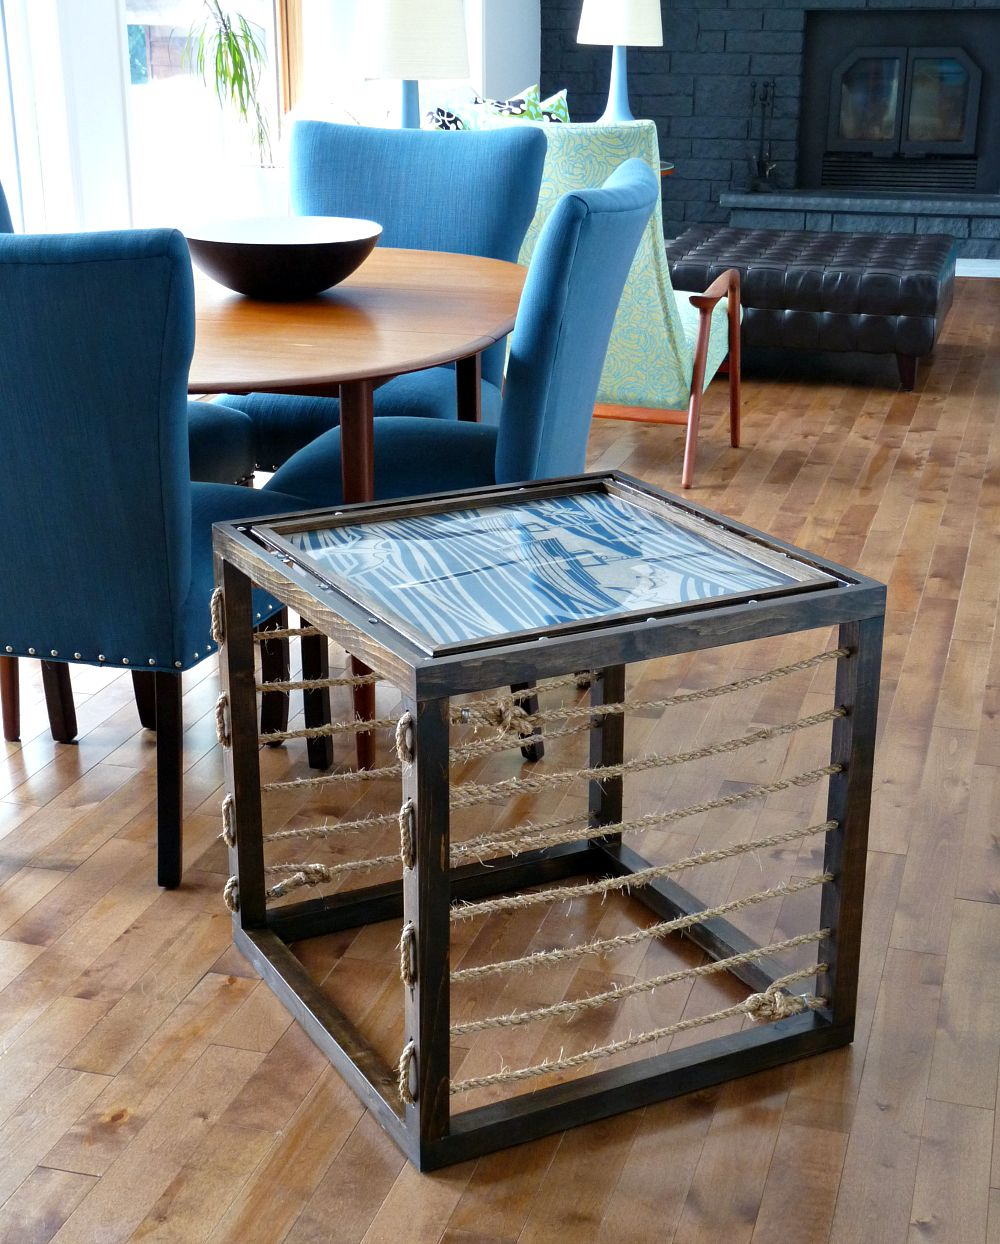 Build a DIY accent table with rope accents